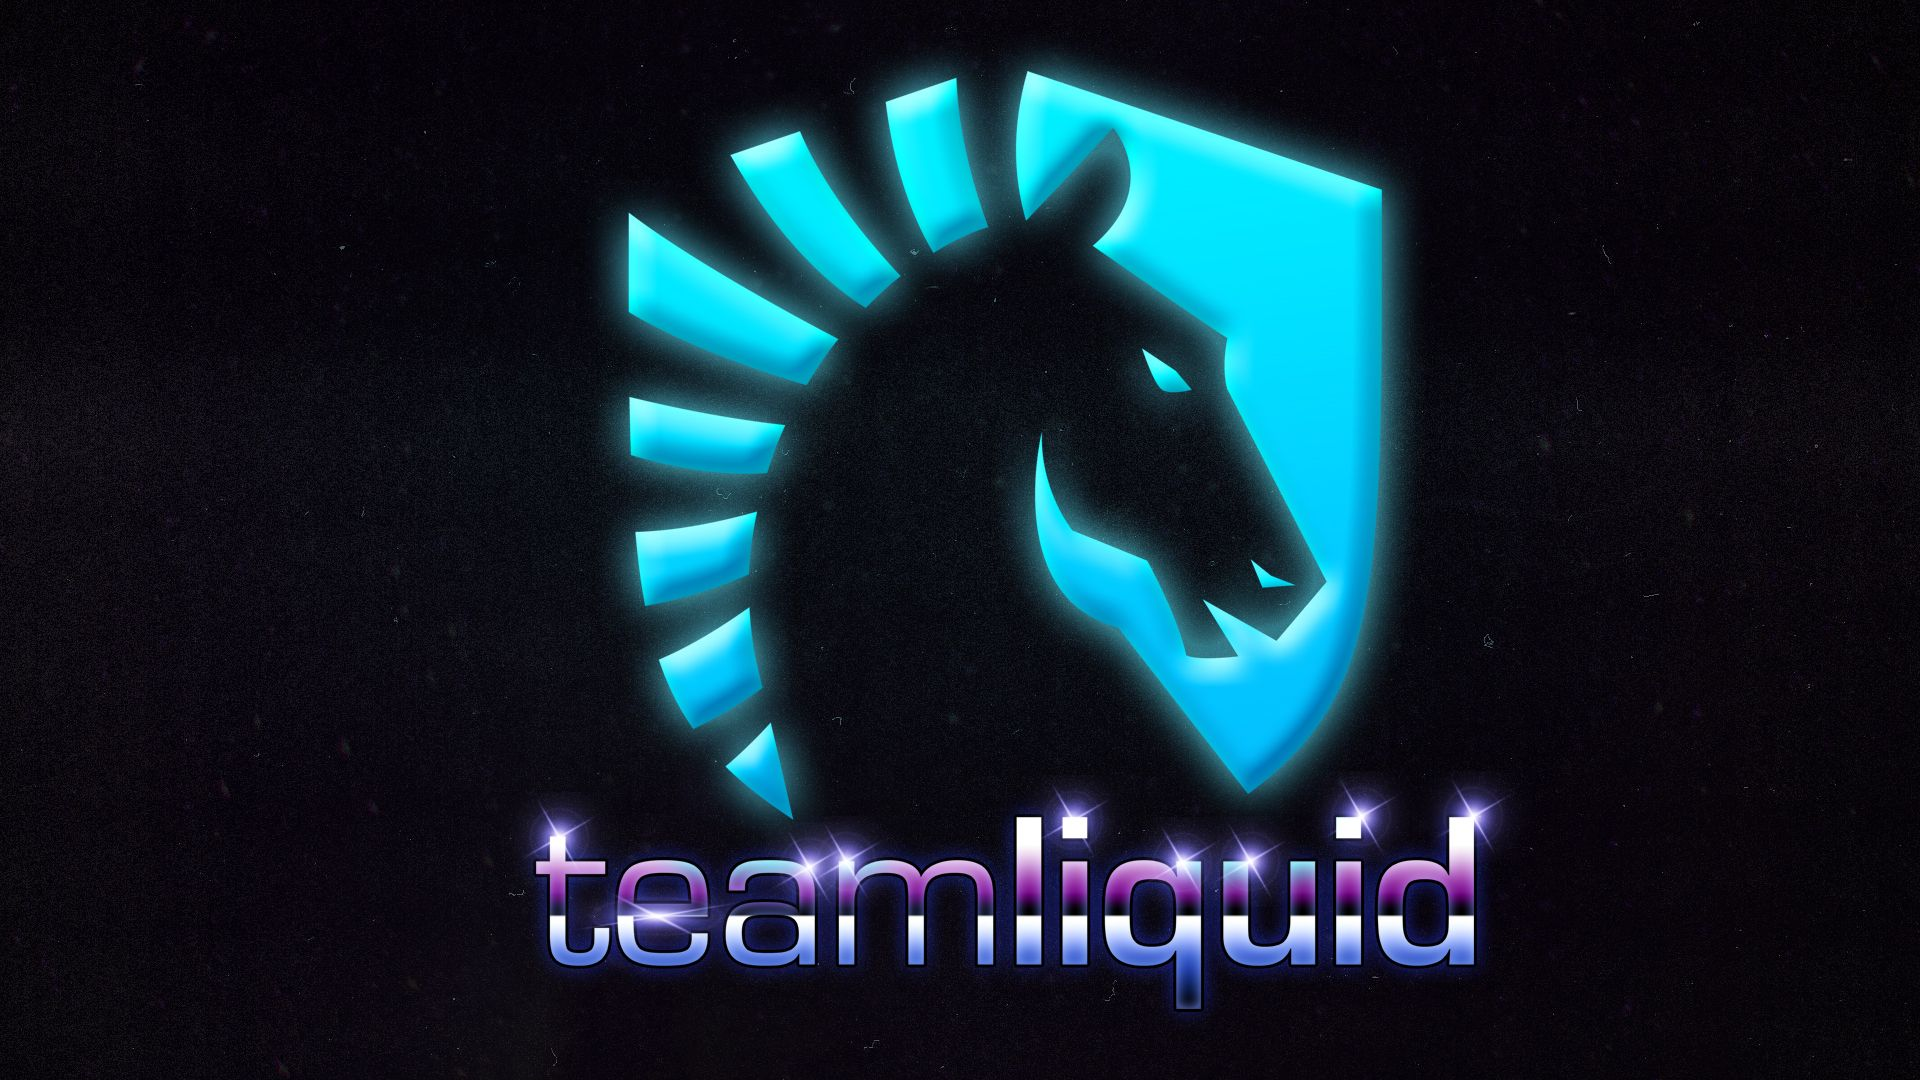 Made a Team Liquid wallpaper. Hope you like it